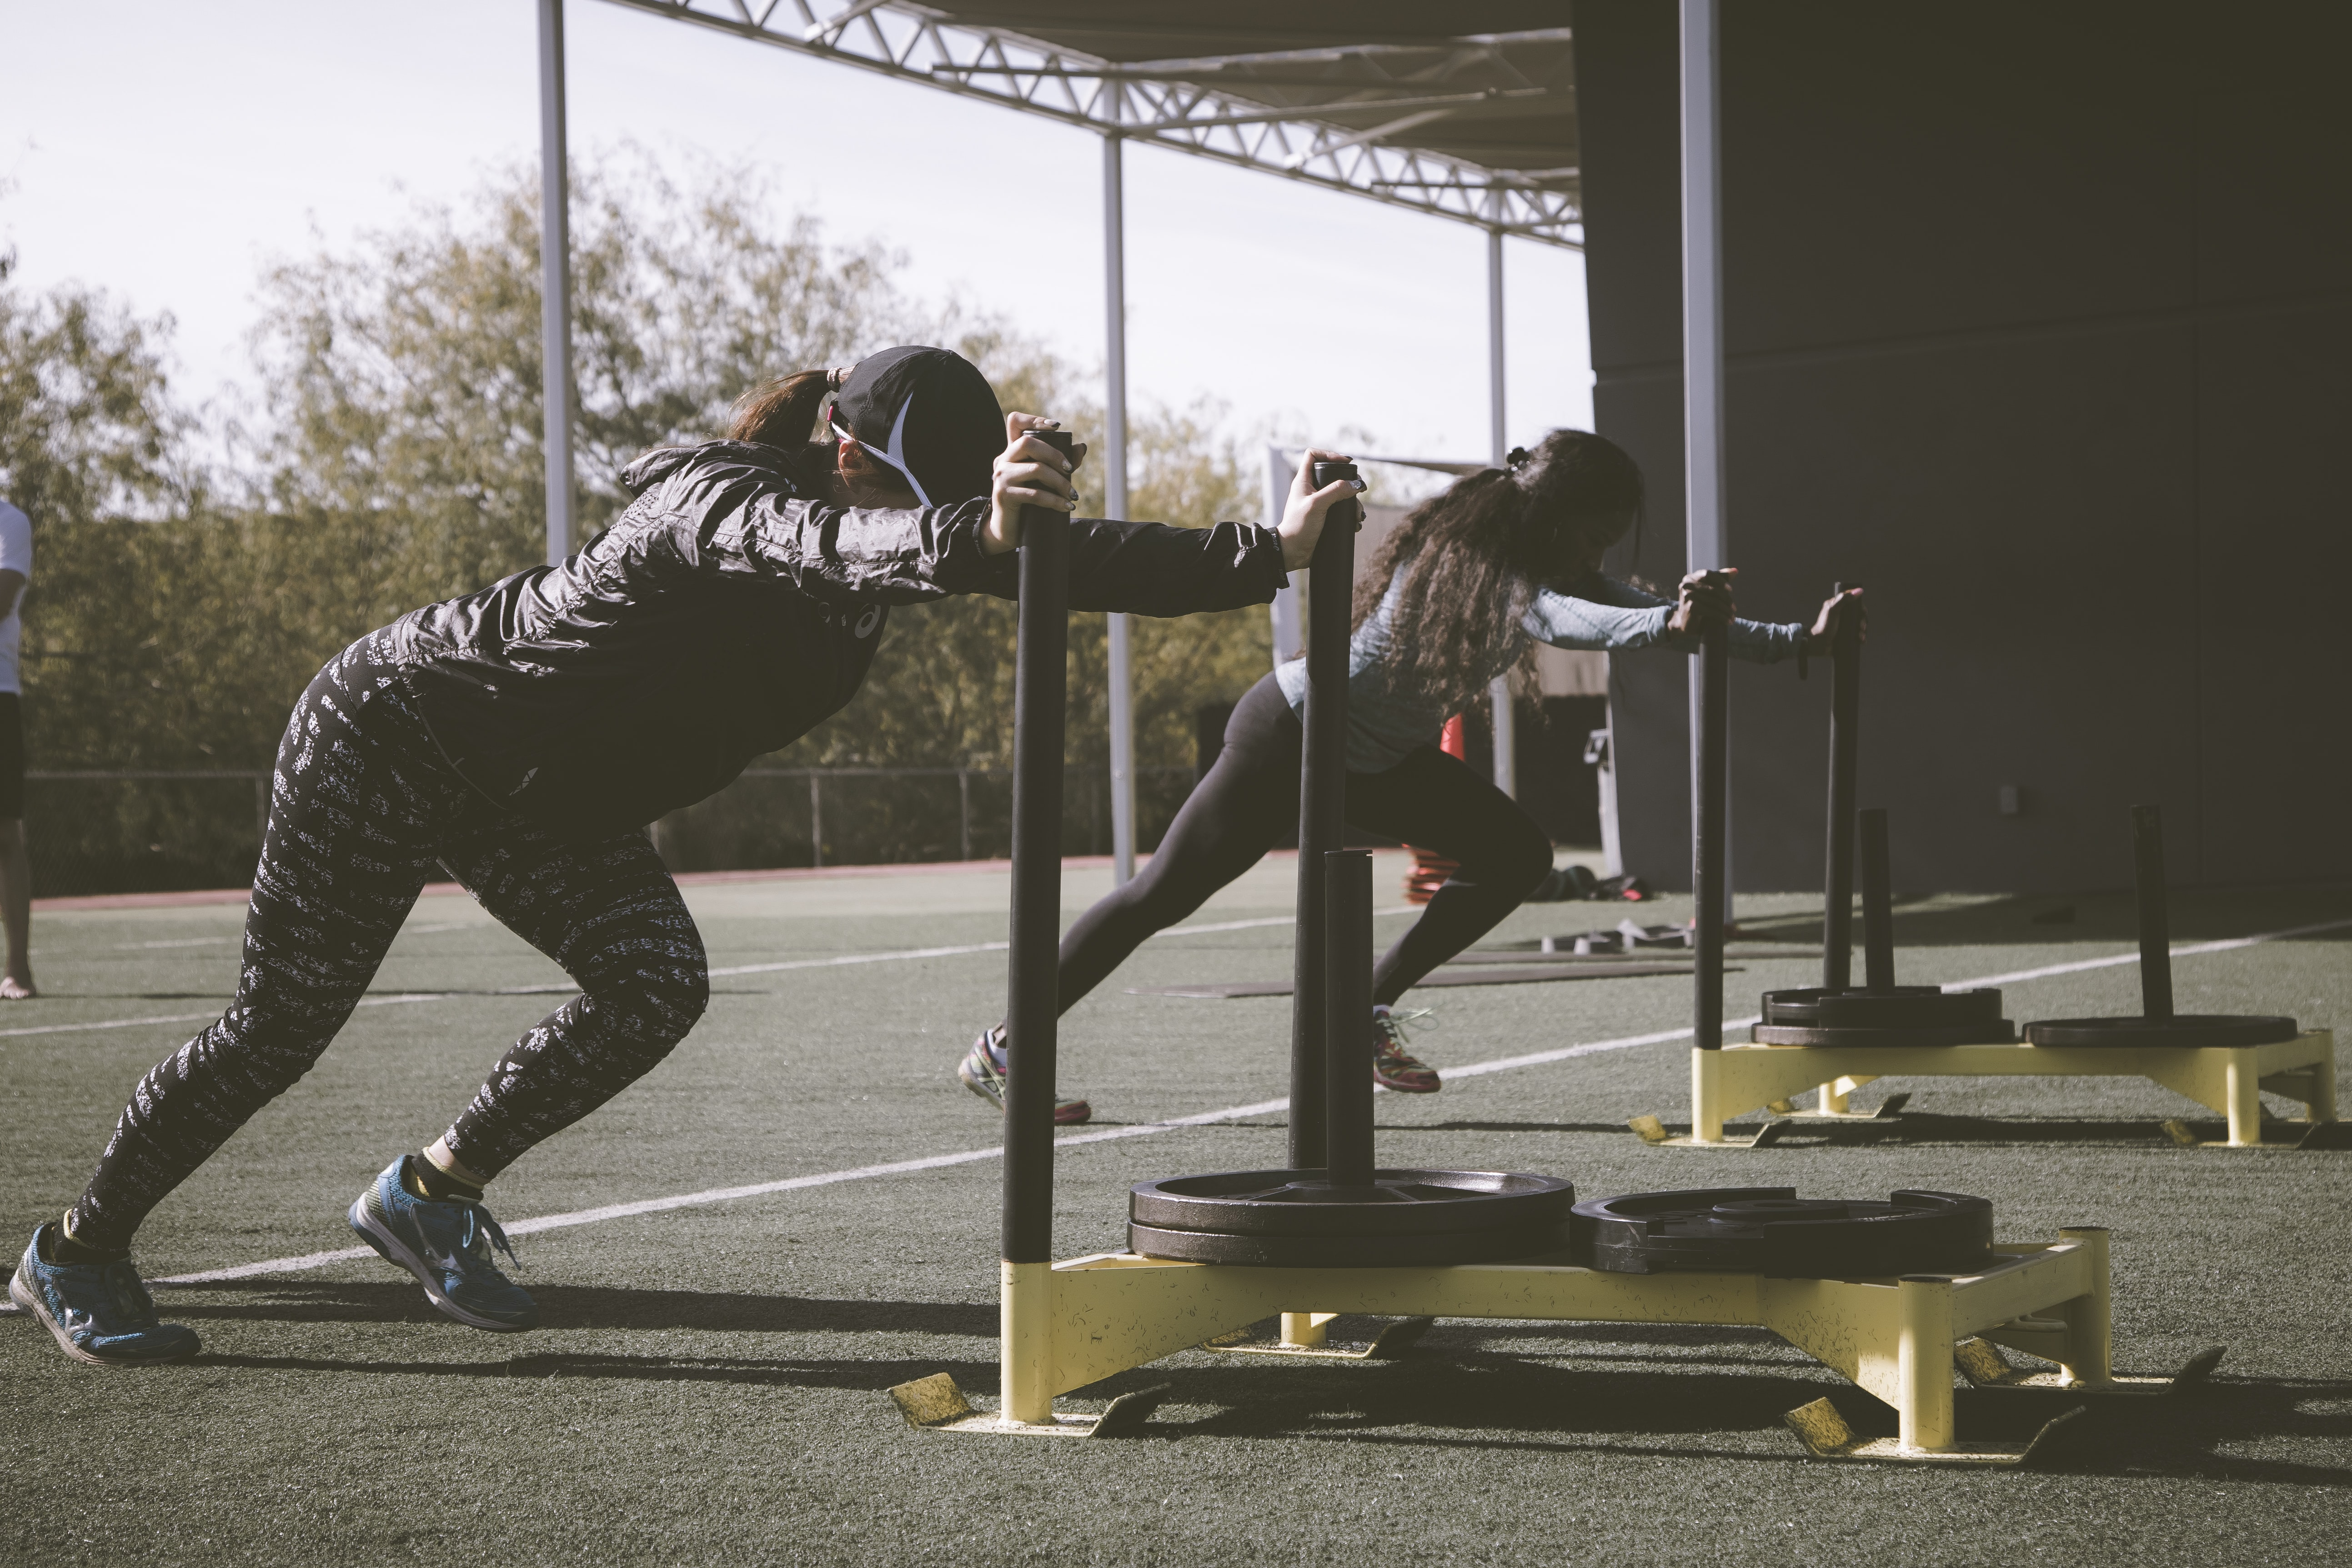 two women doing gym activity during daytime